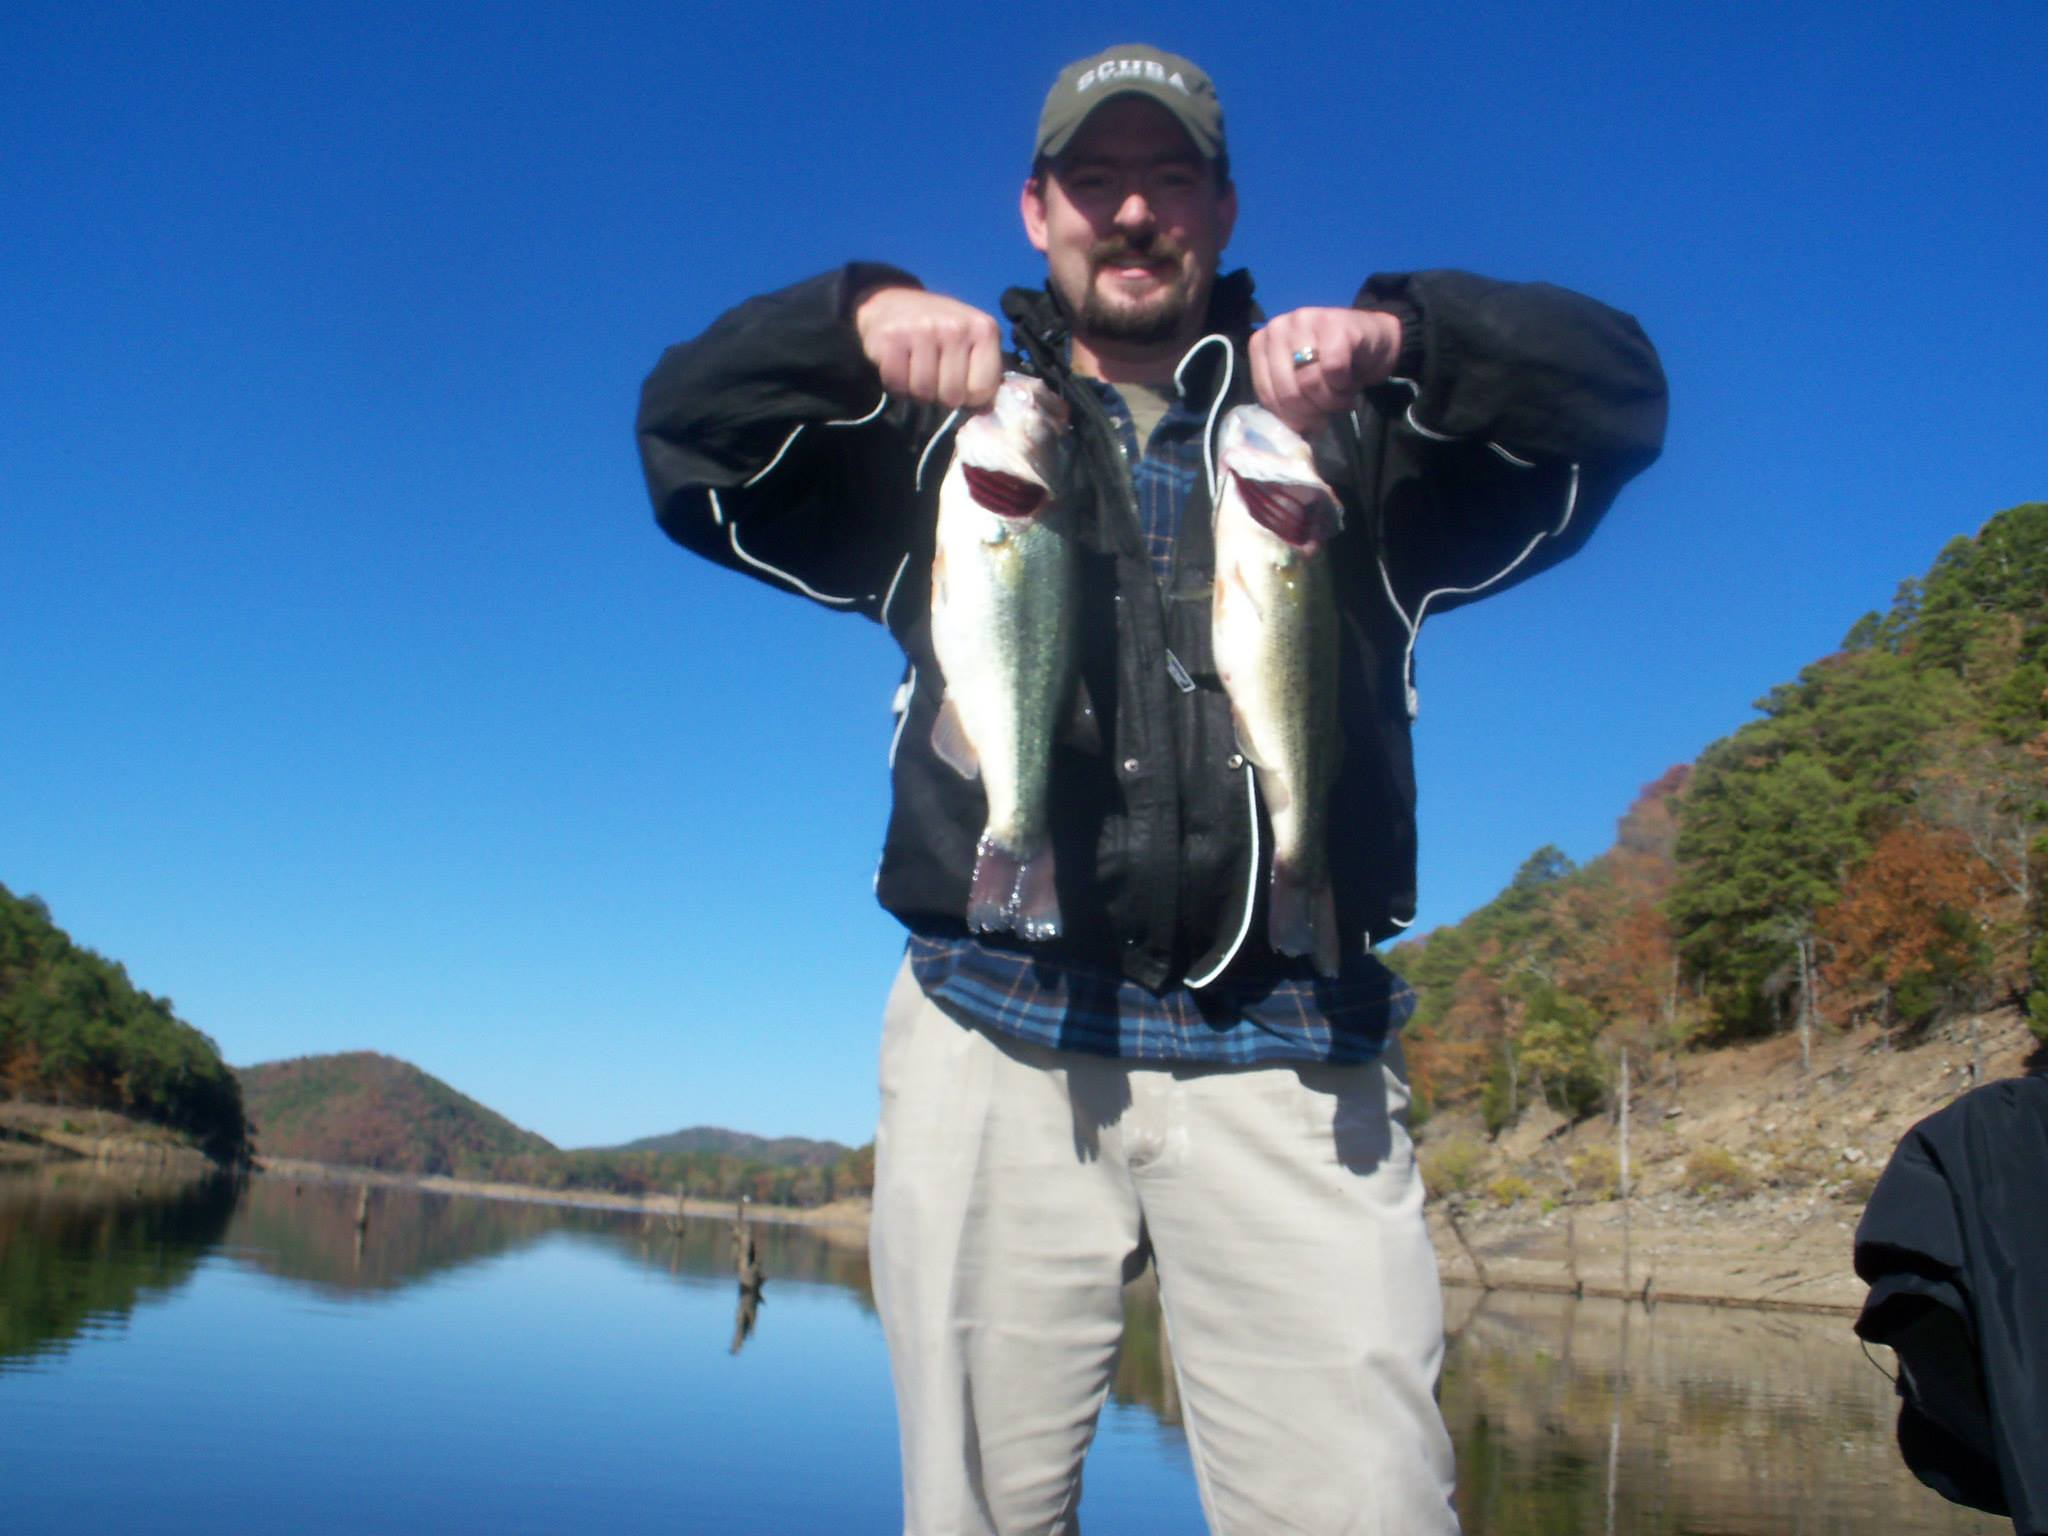 broken bow lake 4 seasons fishing guide service_15.jpg